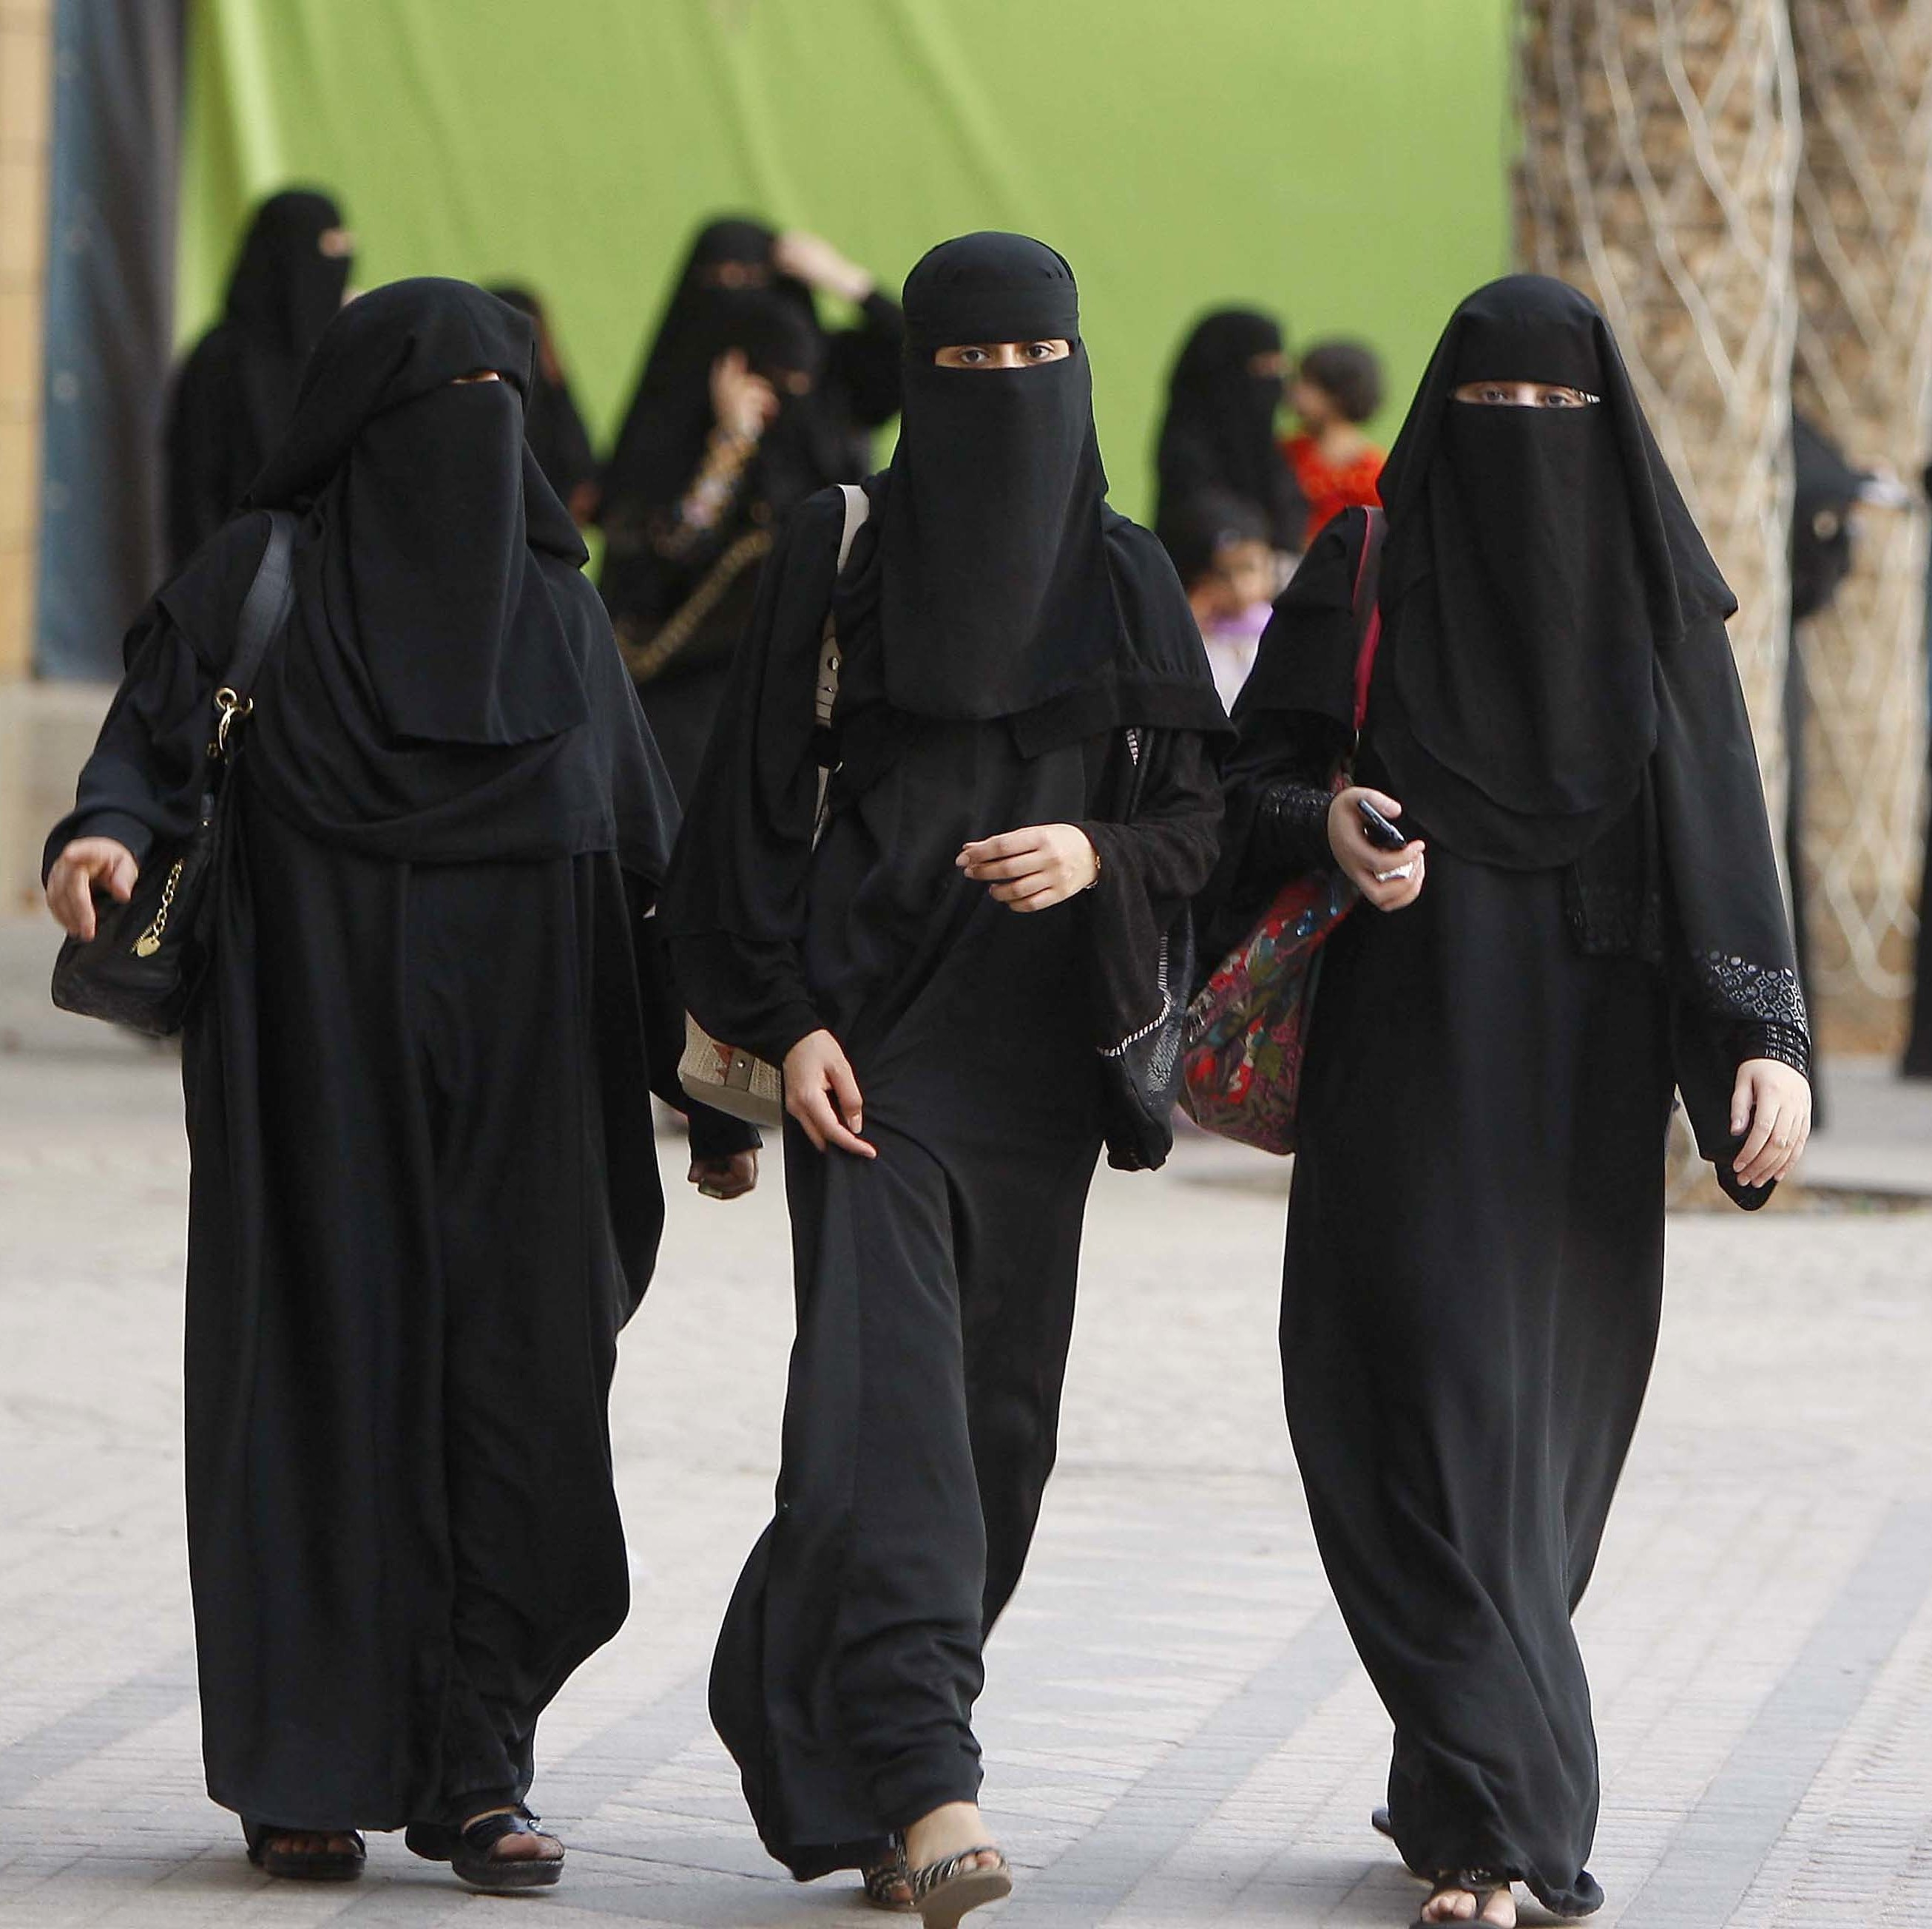 the rights of women in saudi In 2013, the us state department listed the reports of the worst human rights abuses in saudi arabia, which included citizens' lack of the right and legal.